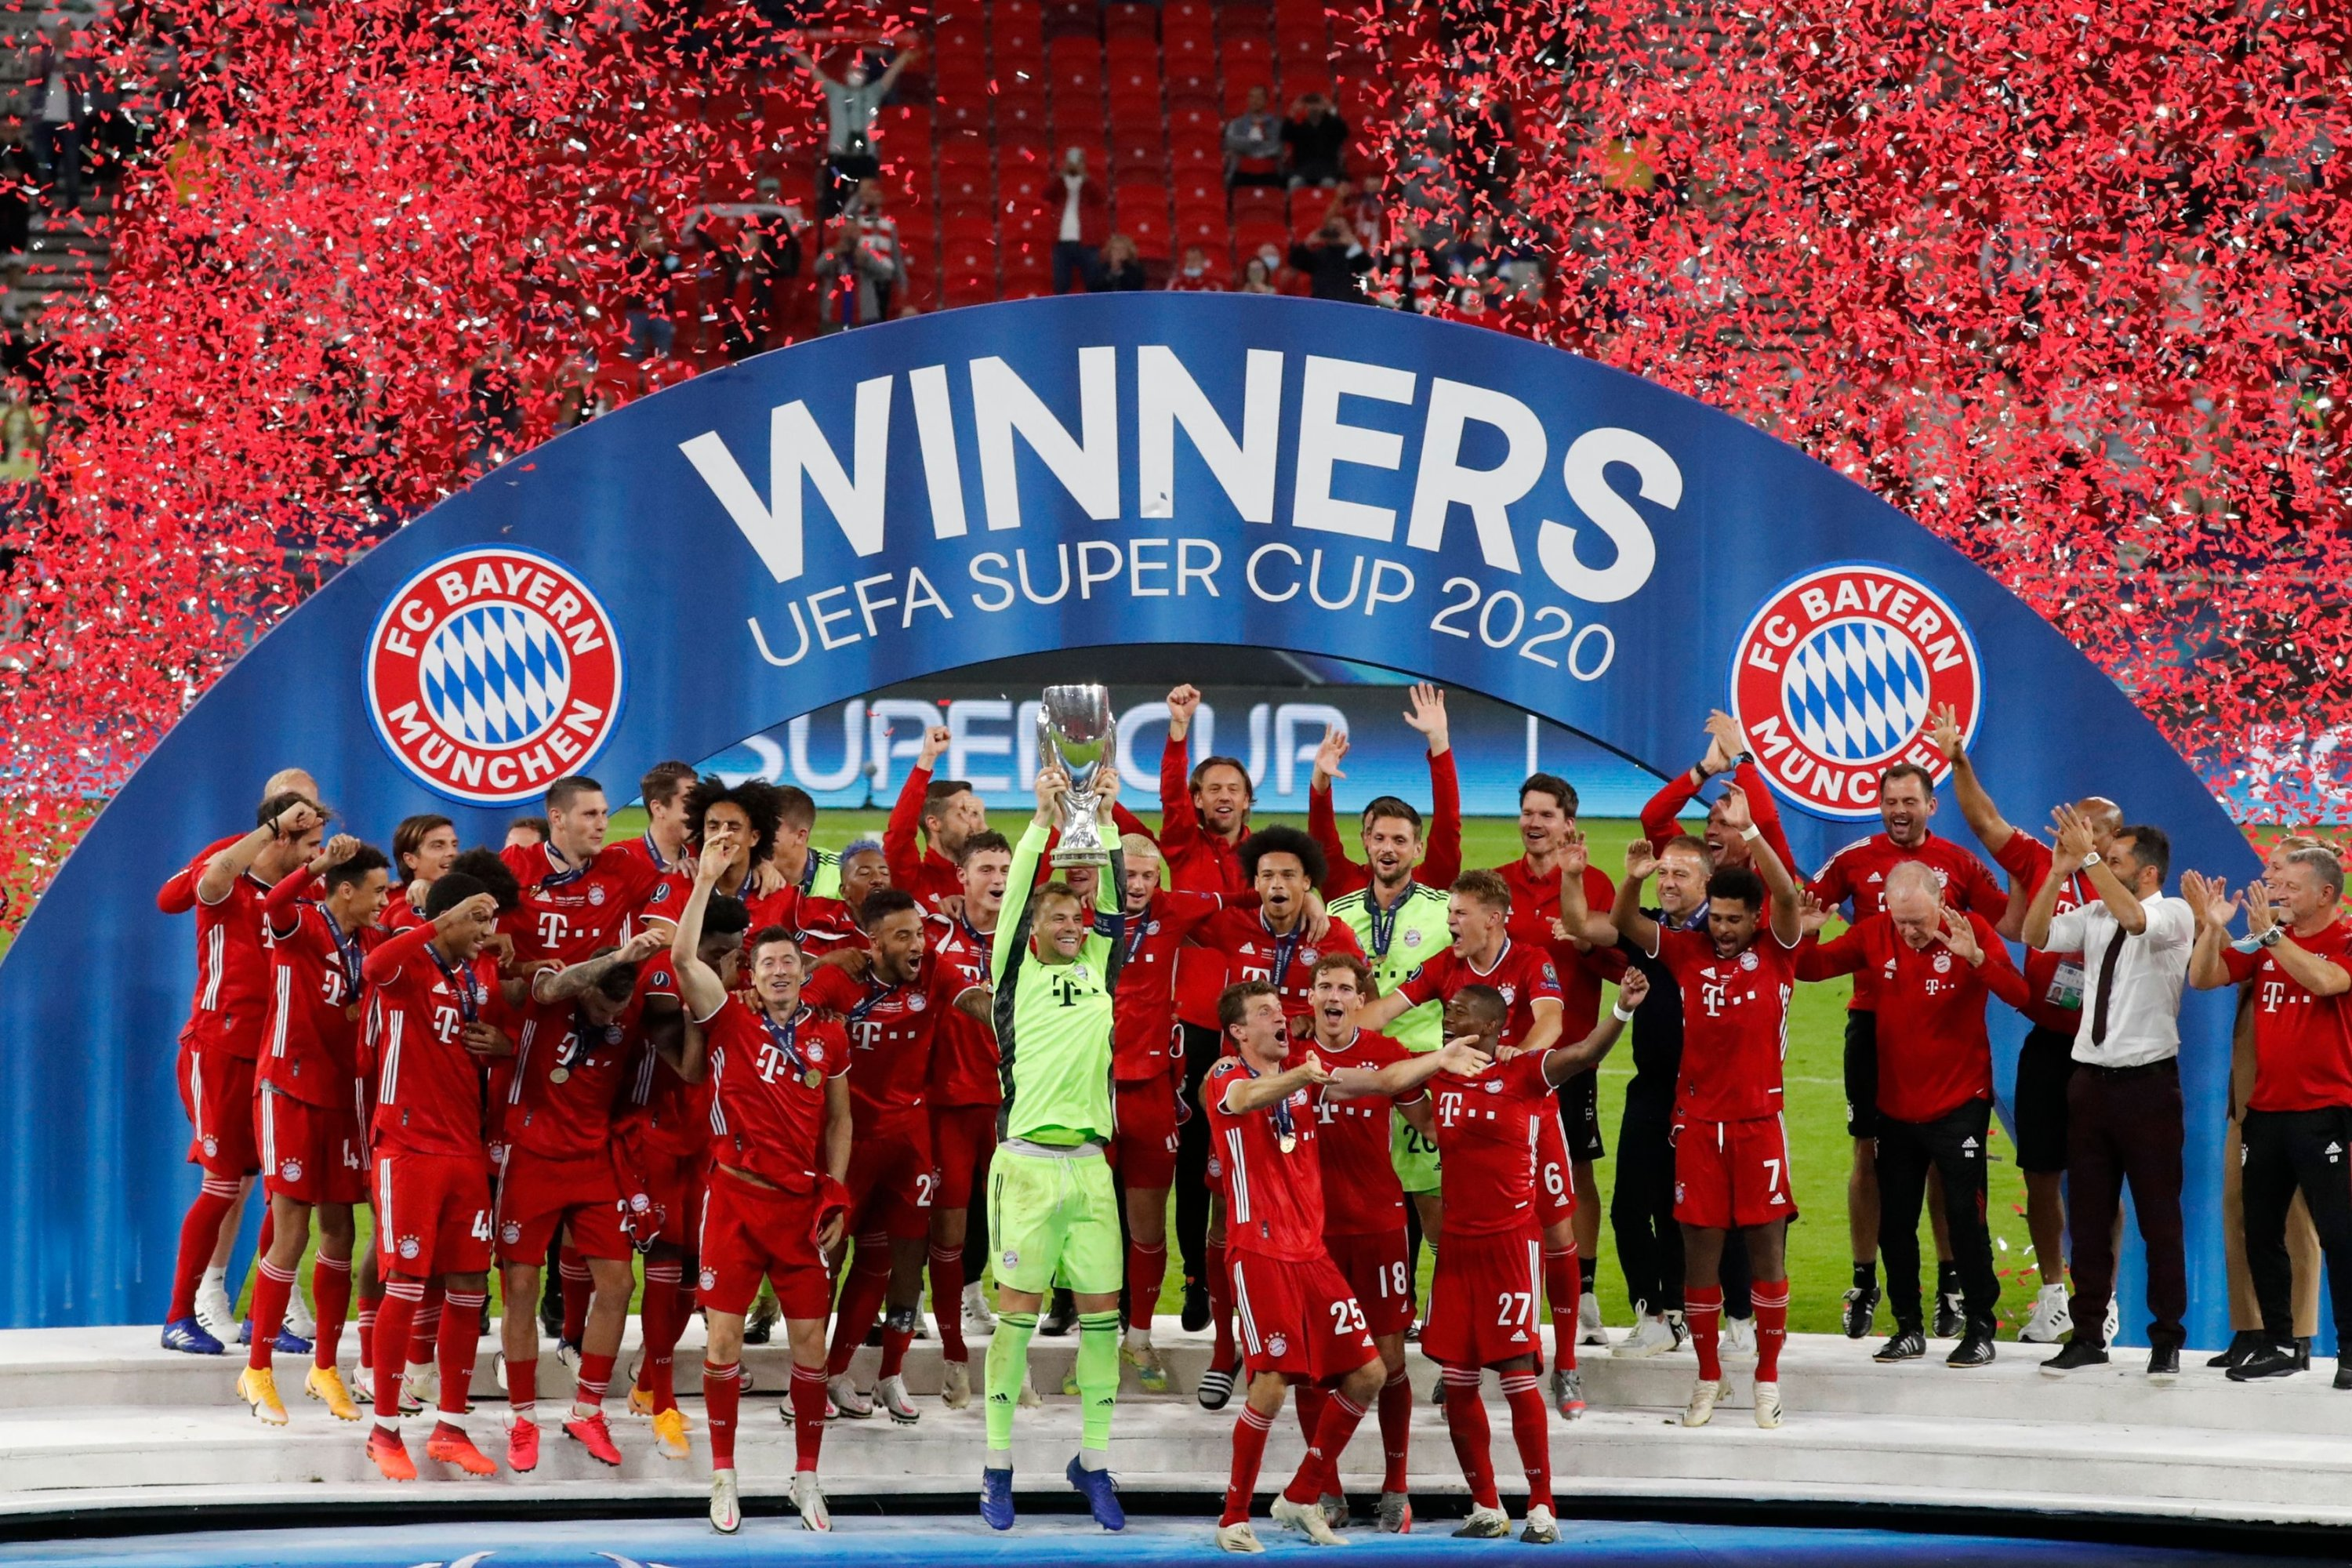 Quadruple kings: Bayern downs Sevilla to lift UEFA Super Cup ...